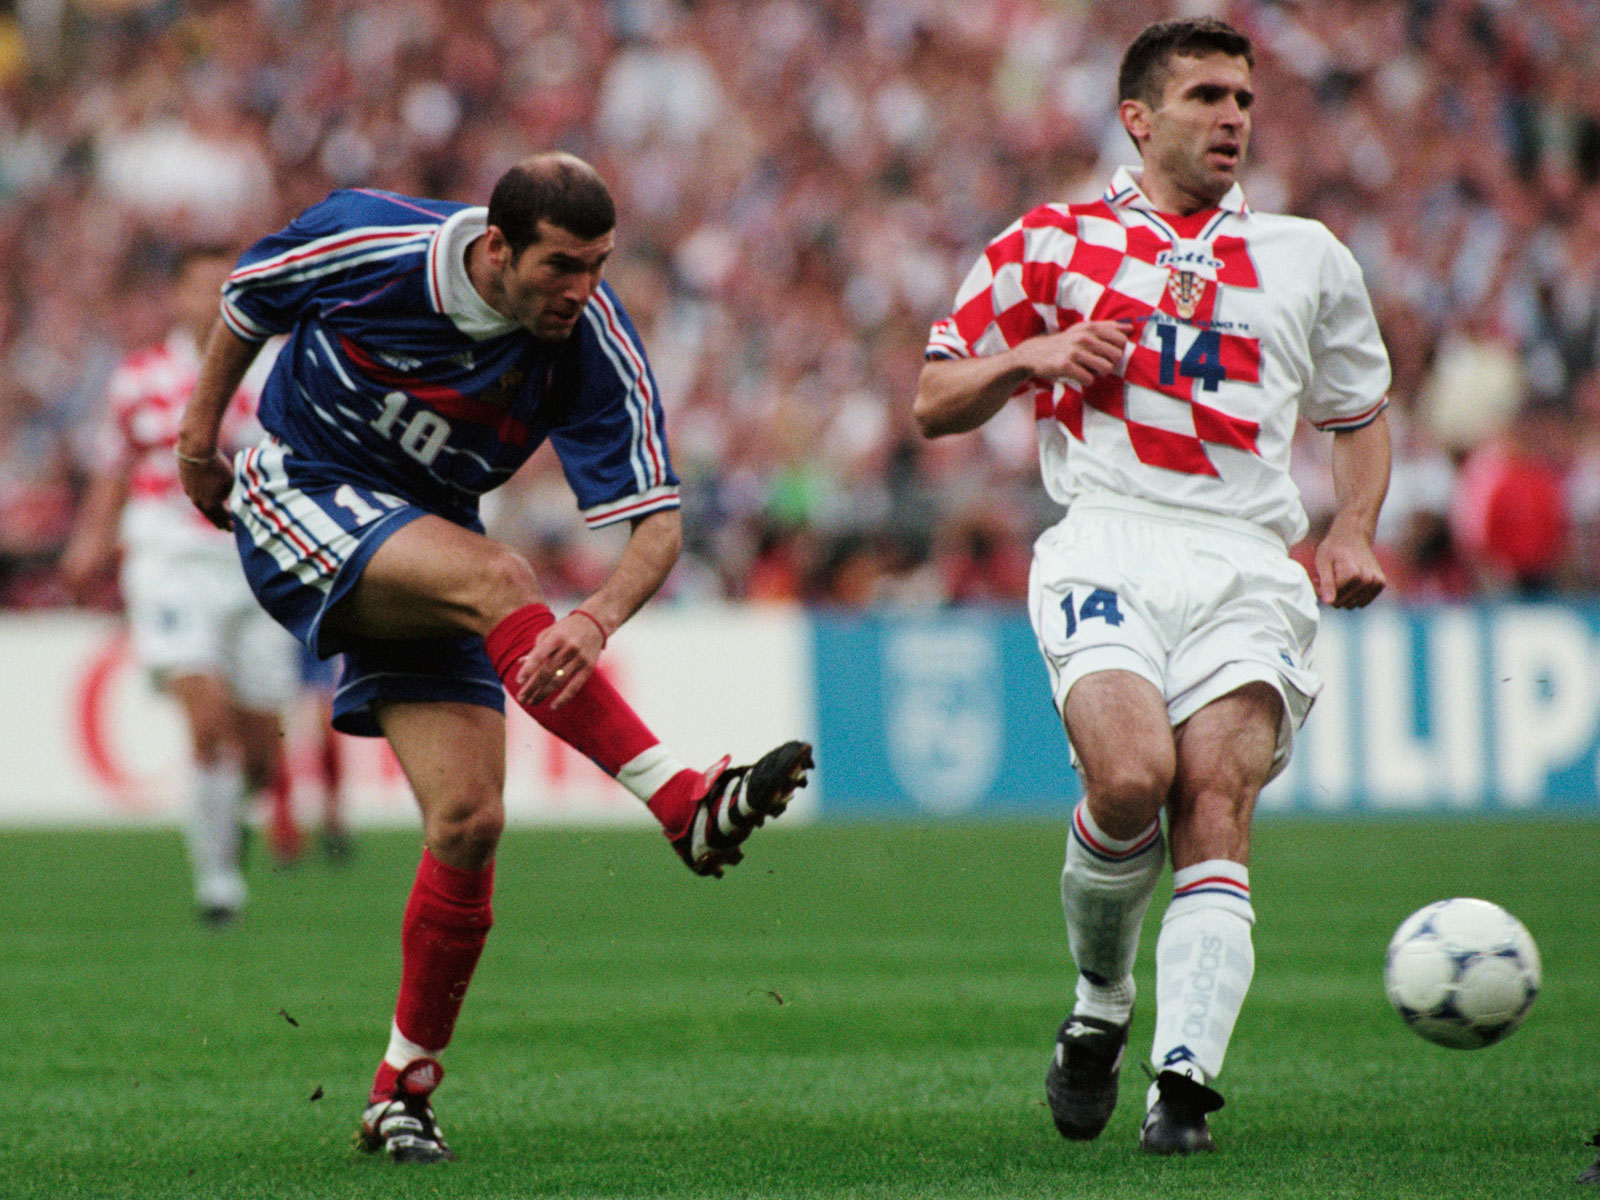 France and Croatia met in the 1998 World Cup semifinals